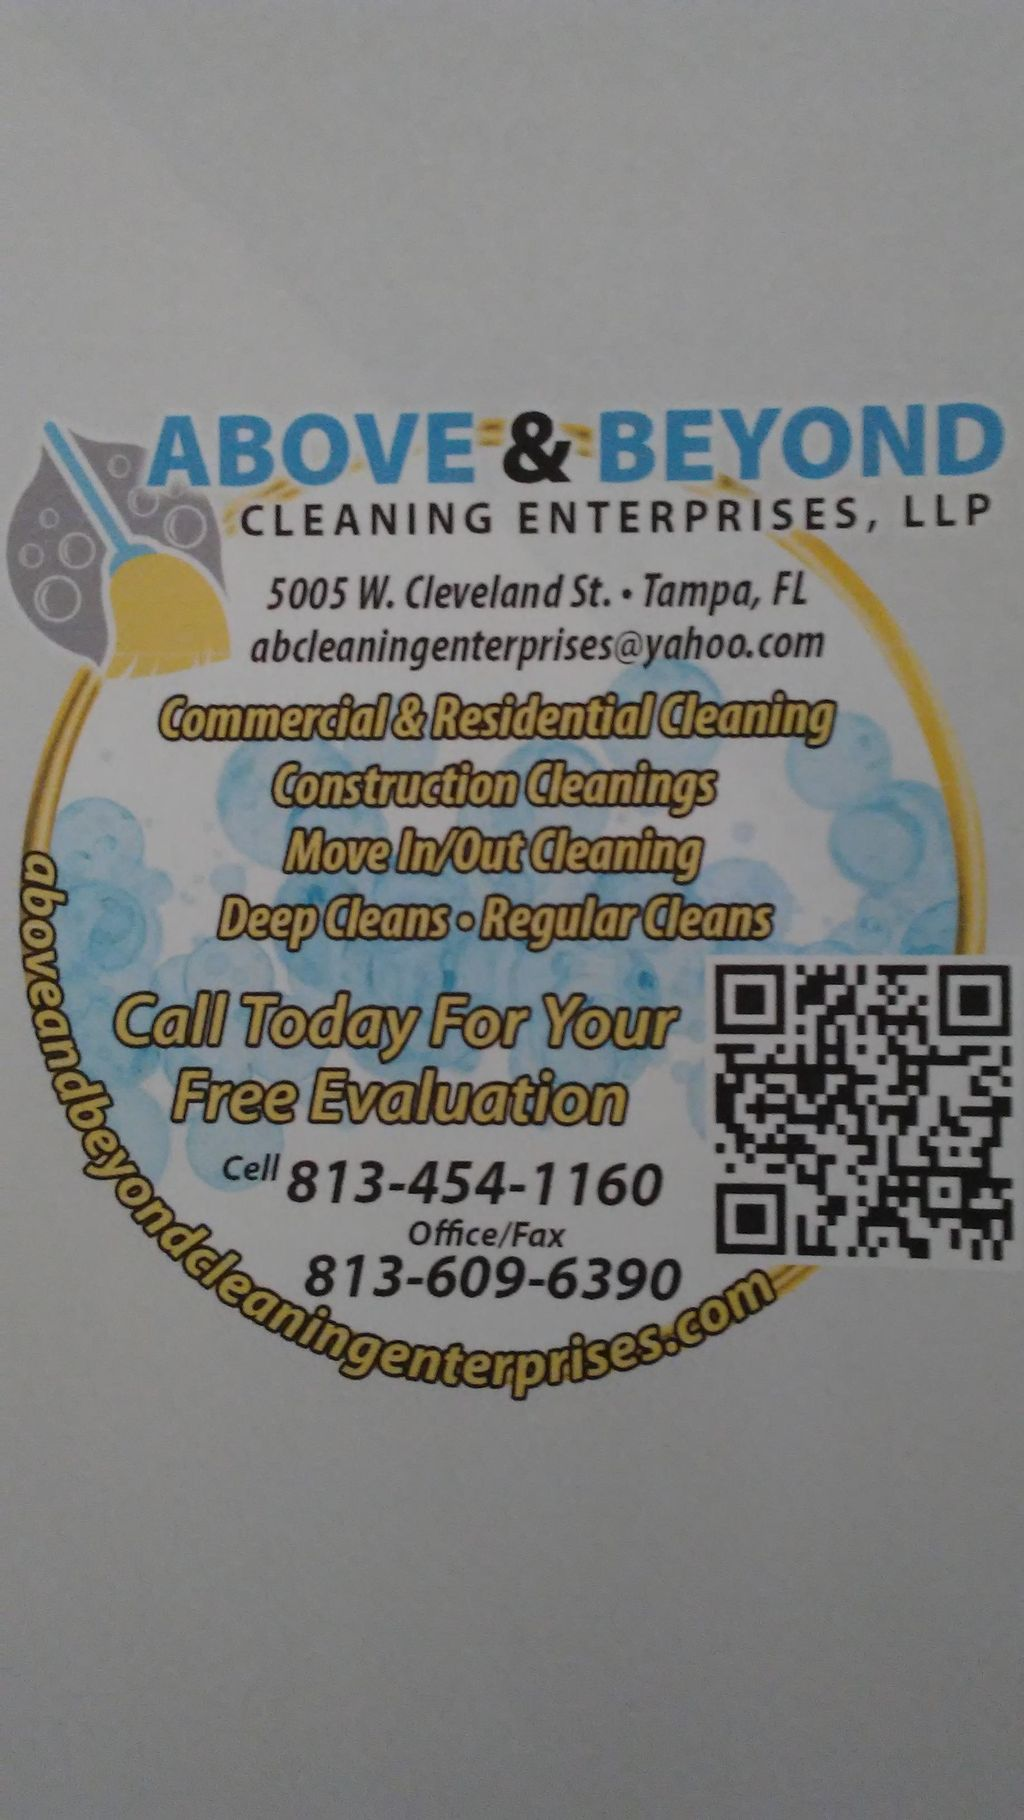 Above and Beyond Cleaning Enterprises